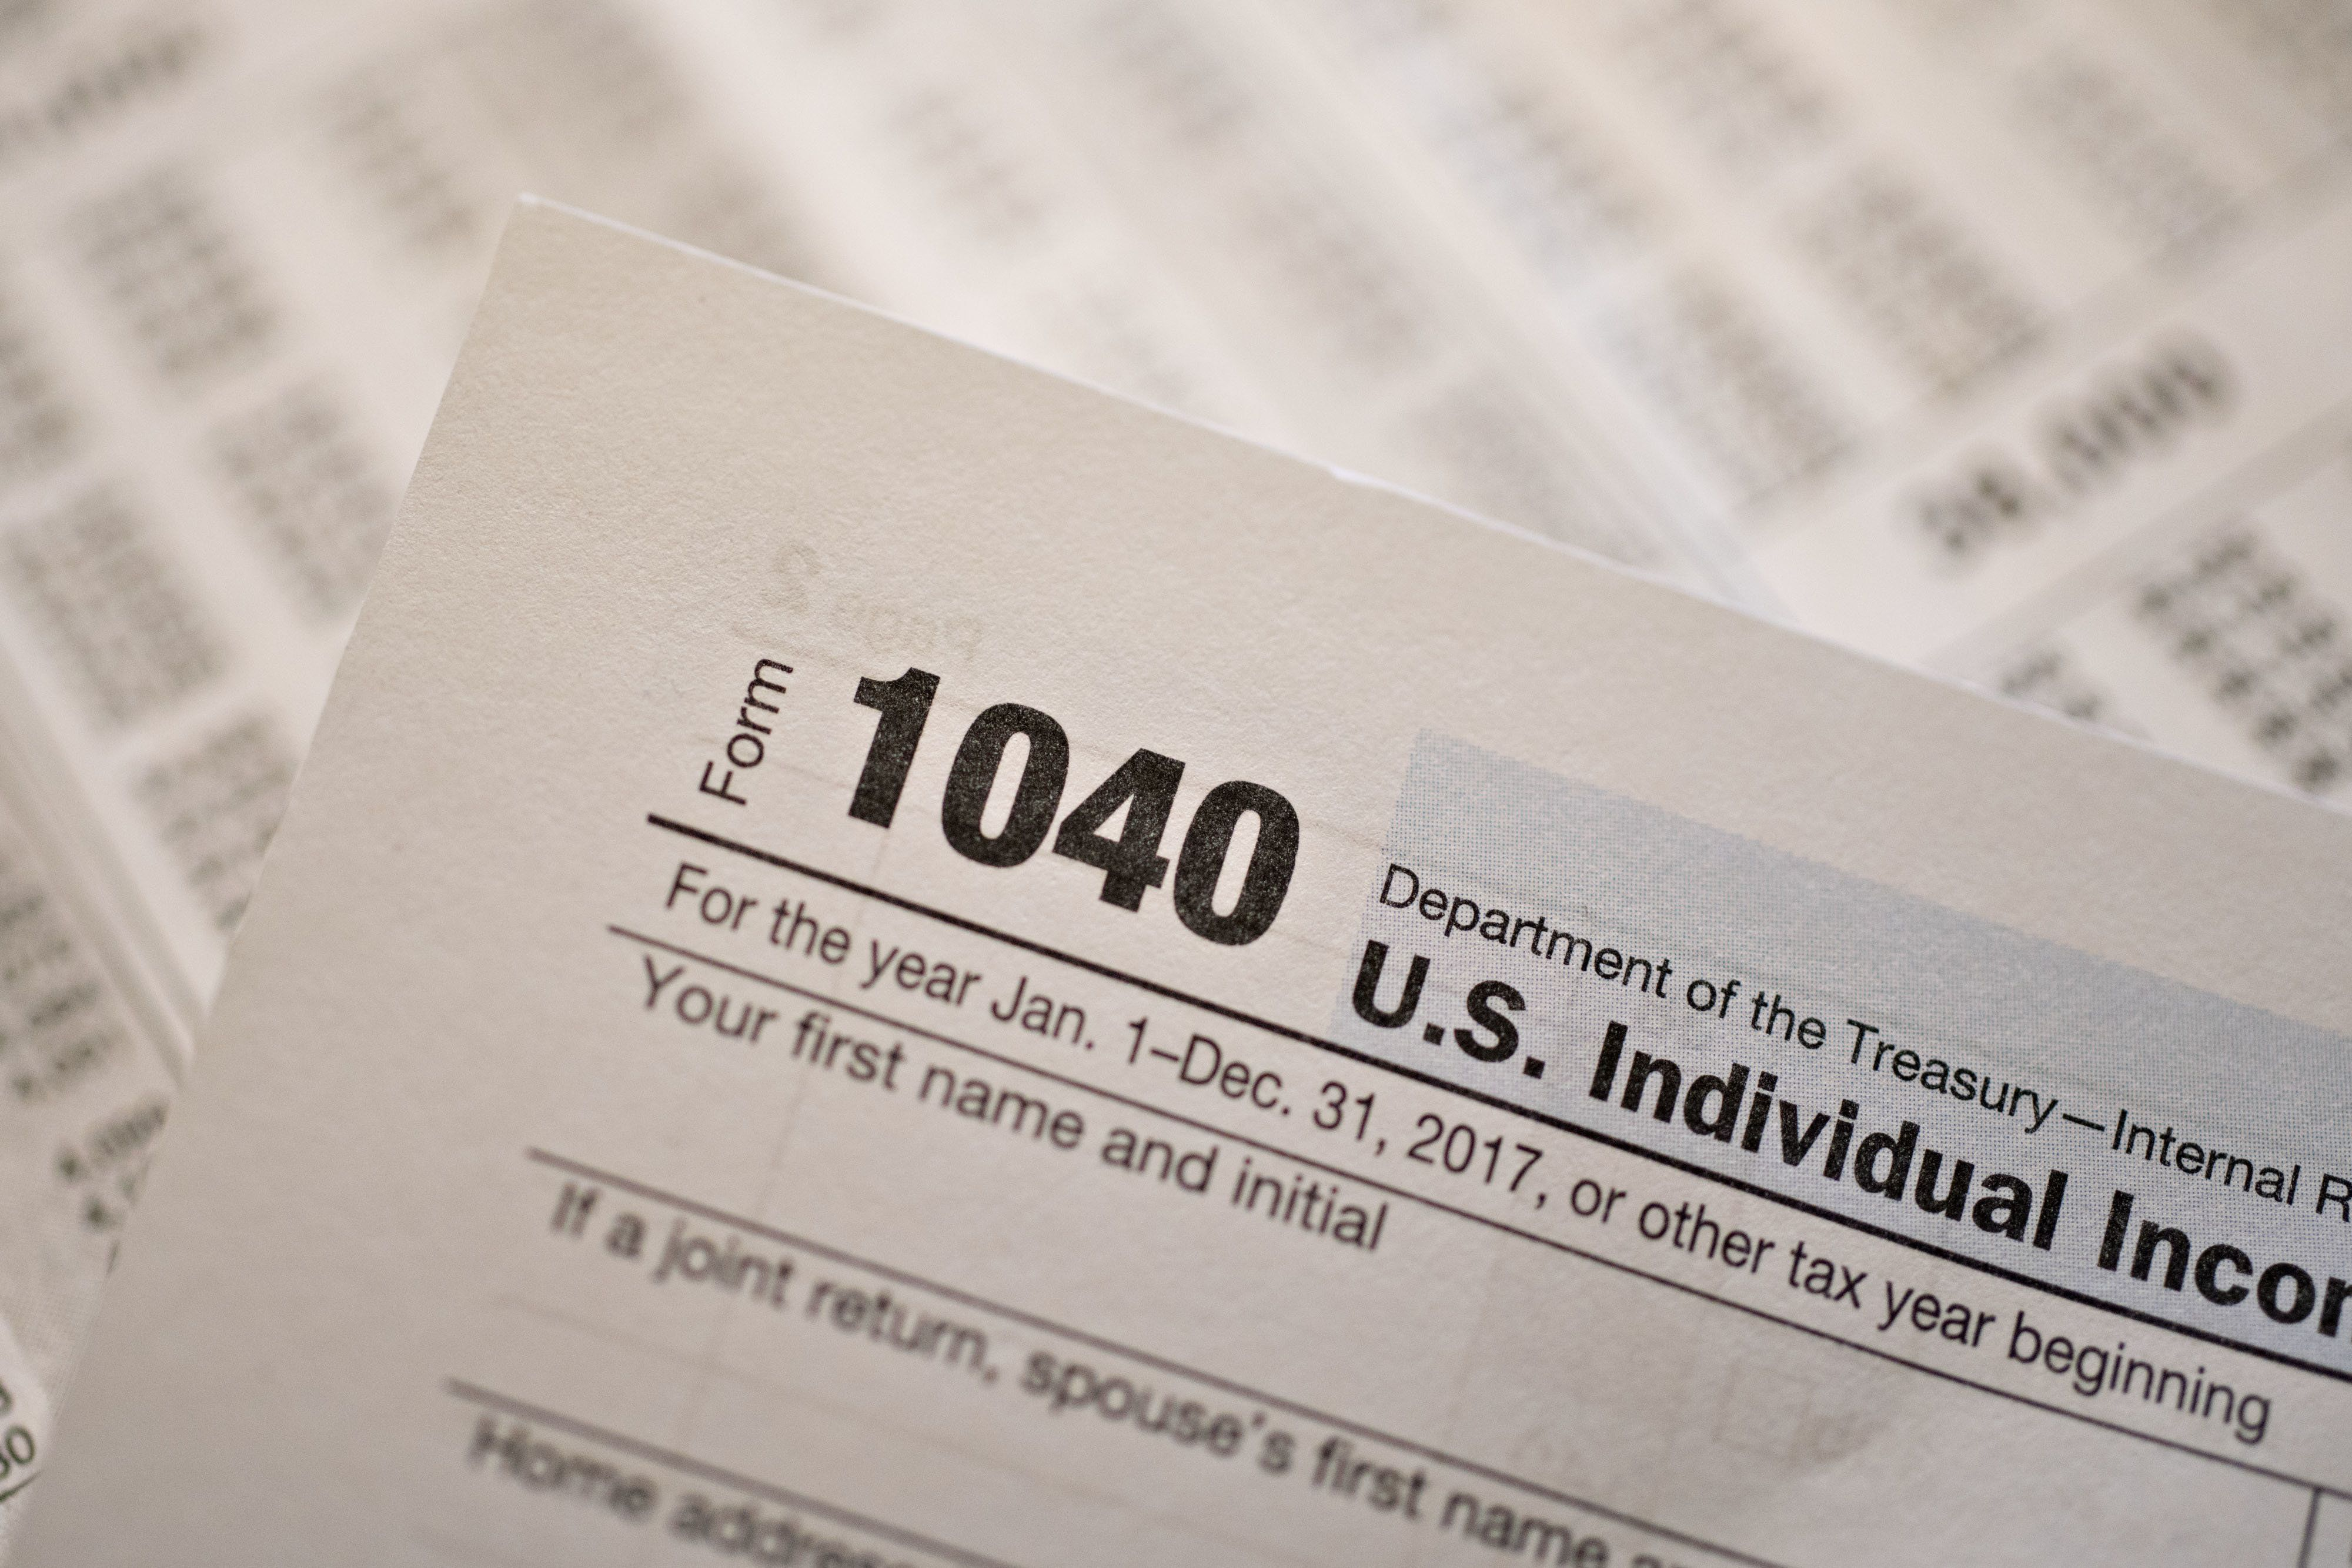 U.S. Department of the Treasury Internal Revenue Service (IRS) 1040 Individual Income Tax forms for the 2017 tax year are arranged for a photograph in Tiskilwa, Illinois, U.S., on Monday, March 19, 2018. The IRS urged taxpayers to use the Service's online tools to view the status of their federal tax account, information such as: the amount they owe or paying their tax liabilities online. Photographer: Daniel Acker/Bloomberg via Getty Images